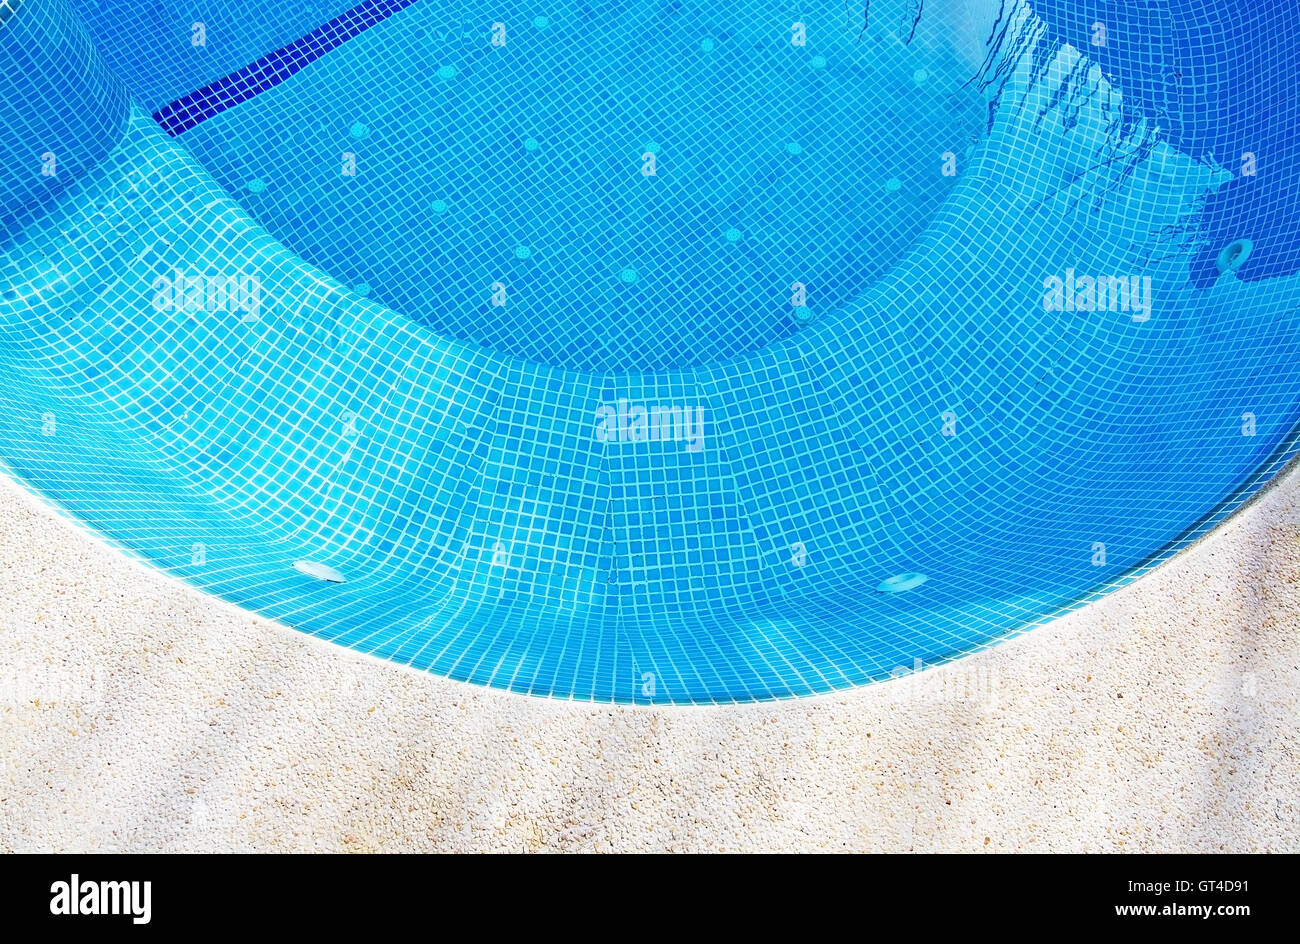 Swimming Pool Background swimming pool background with concrete and blue tiles in a curve